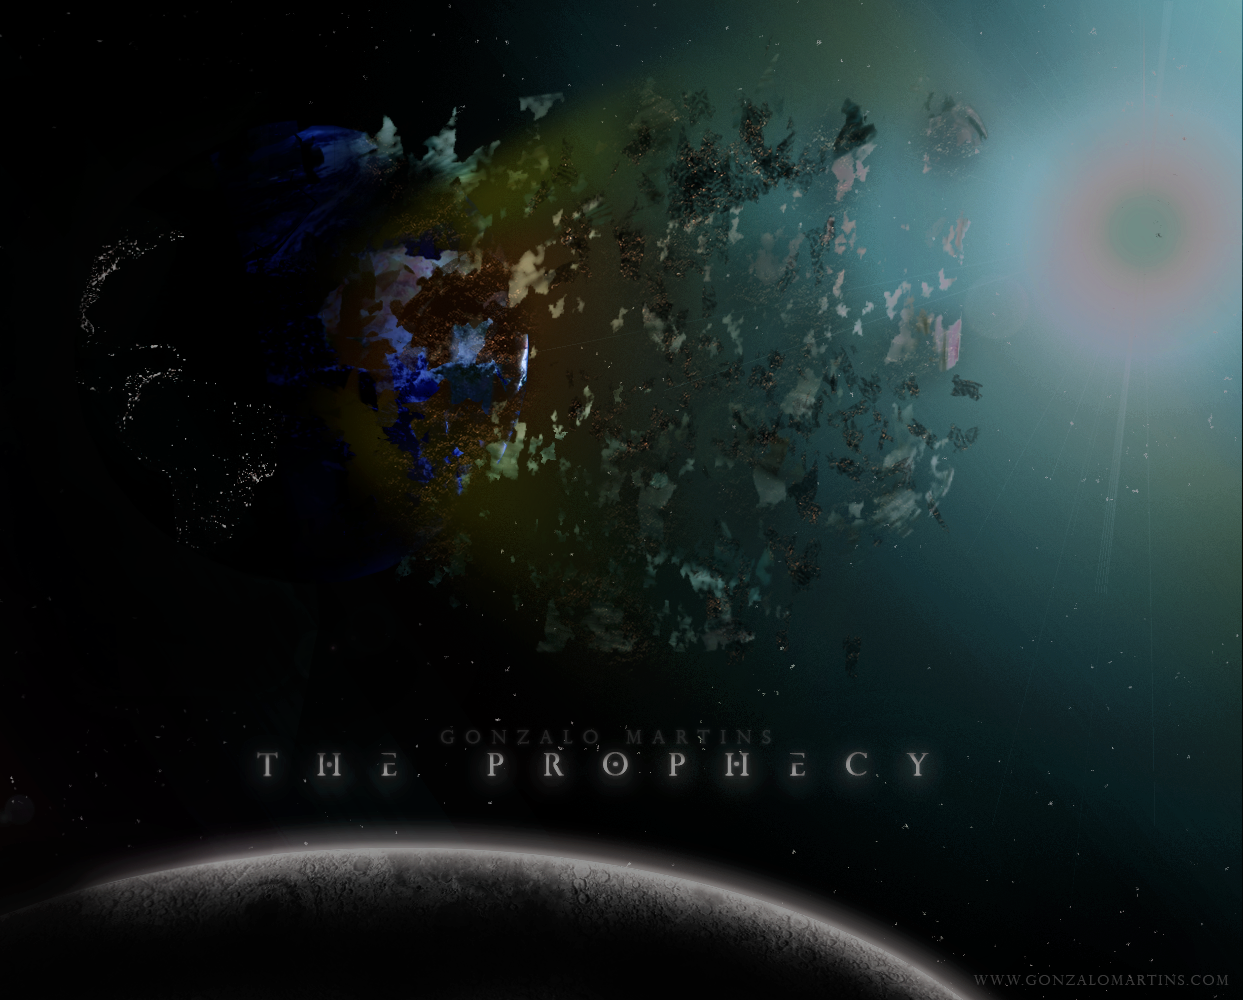 New Single - The Prophecy